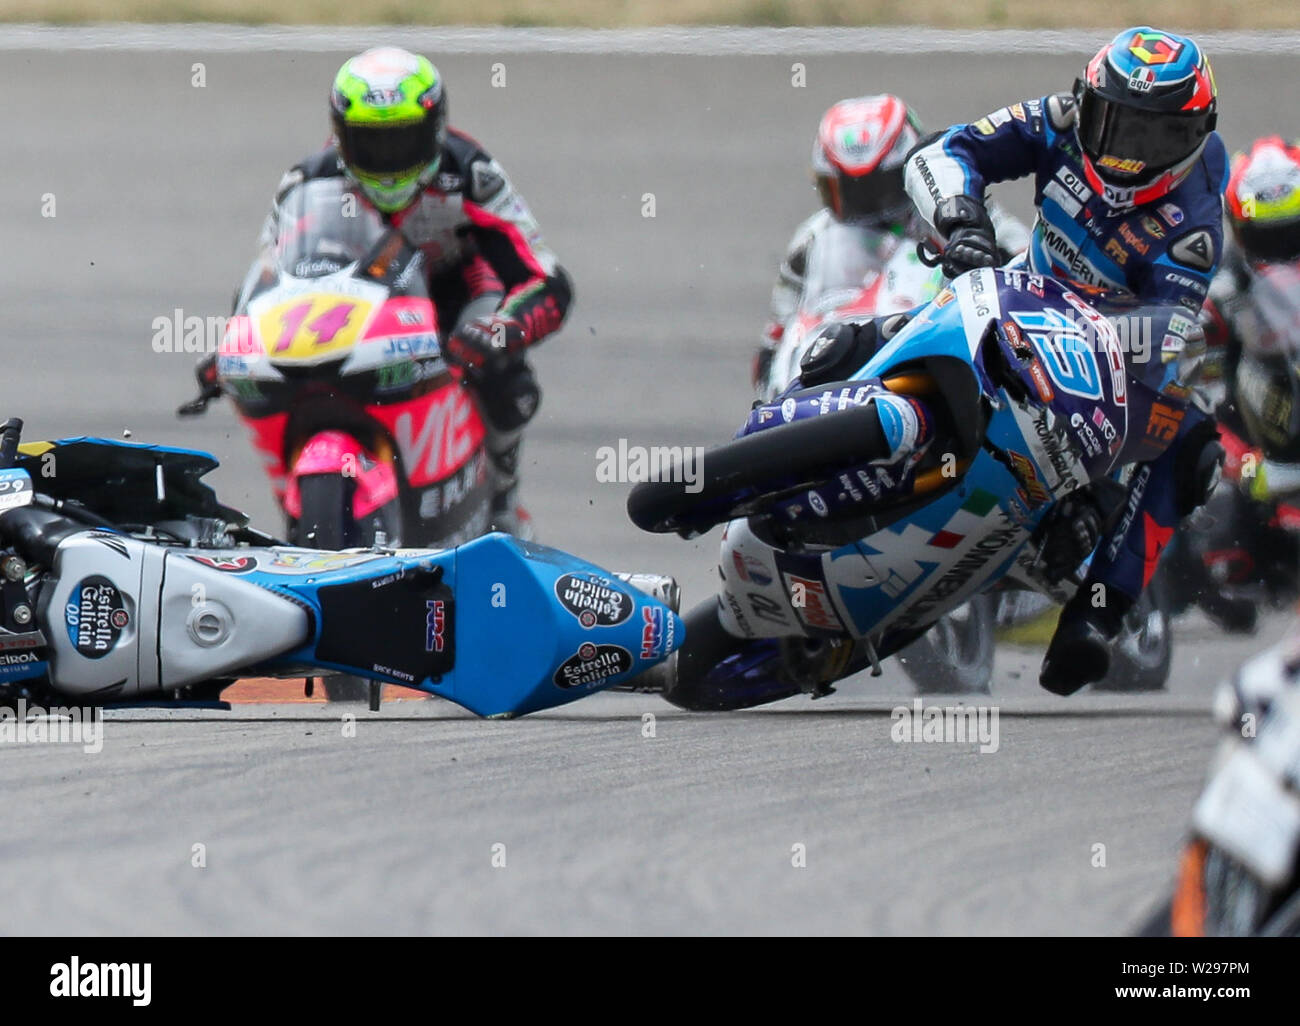 Hohenstein Ernstthal, Germany. 07th July, 2019. Motorsport/Motorcycle, Grand Prix of Germany, Moto3 at the Sachsenring: Rider Gabriel Rodrigo (Argentina, Kömmerling Gresini Moto3 Team) crashes over the bike of rider Alonso Lopez (Spain, Estrella Galicia 0, 0 Team) in the first lap after the start. Credit: Jan Woitas/dpa-Zentralbild/dpa/Alamy Live News - Stock Image